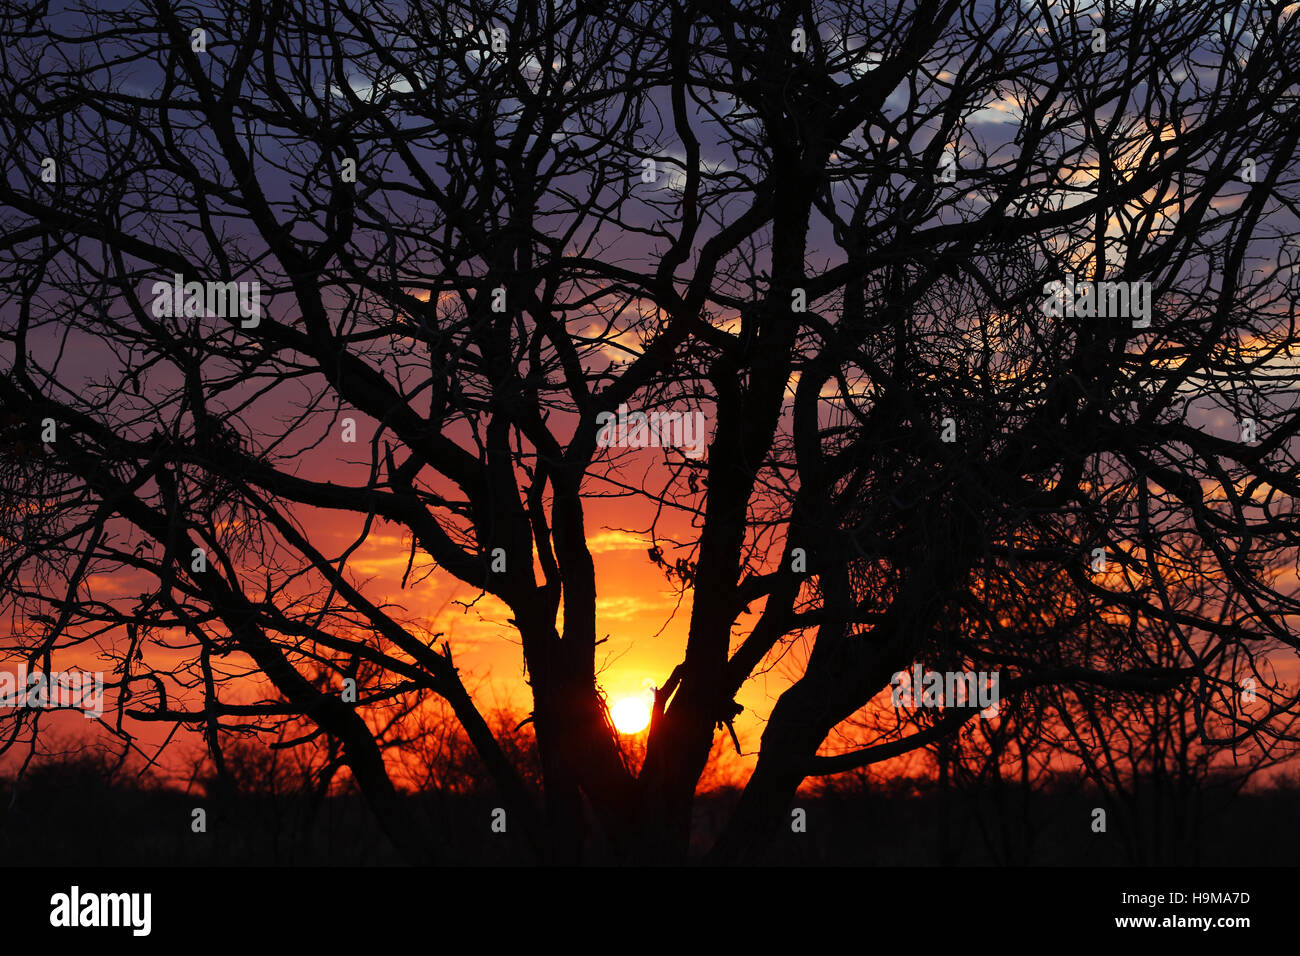 Silhouete of a tree at sunrise in Etosha Park, Namibia - Stock Image